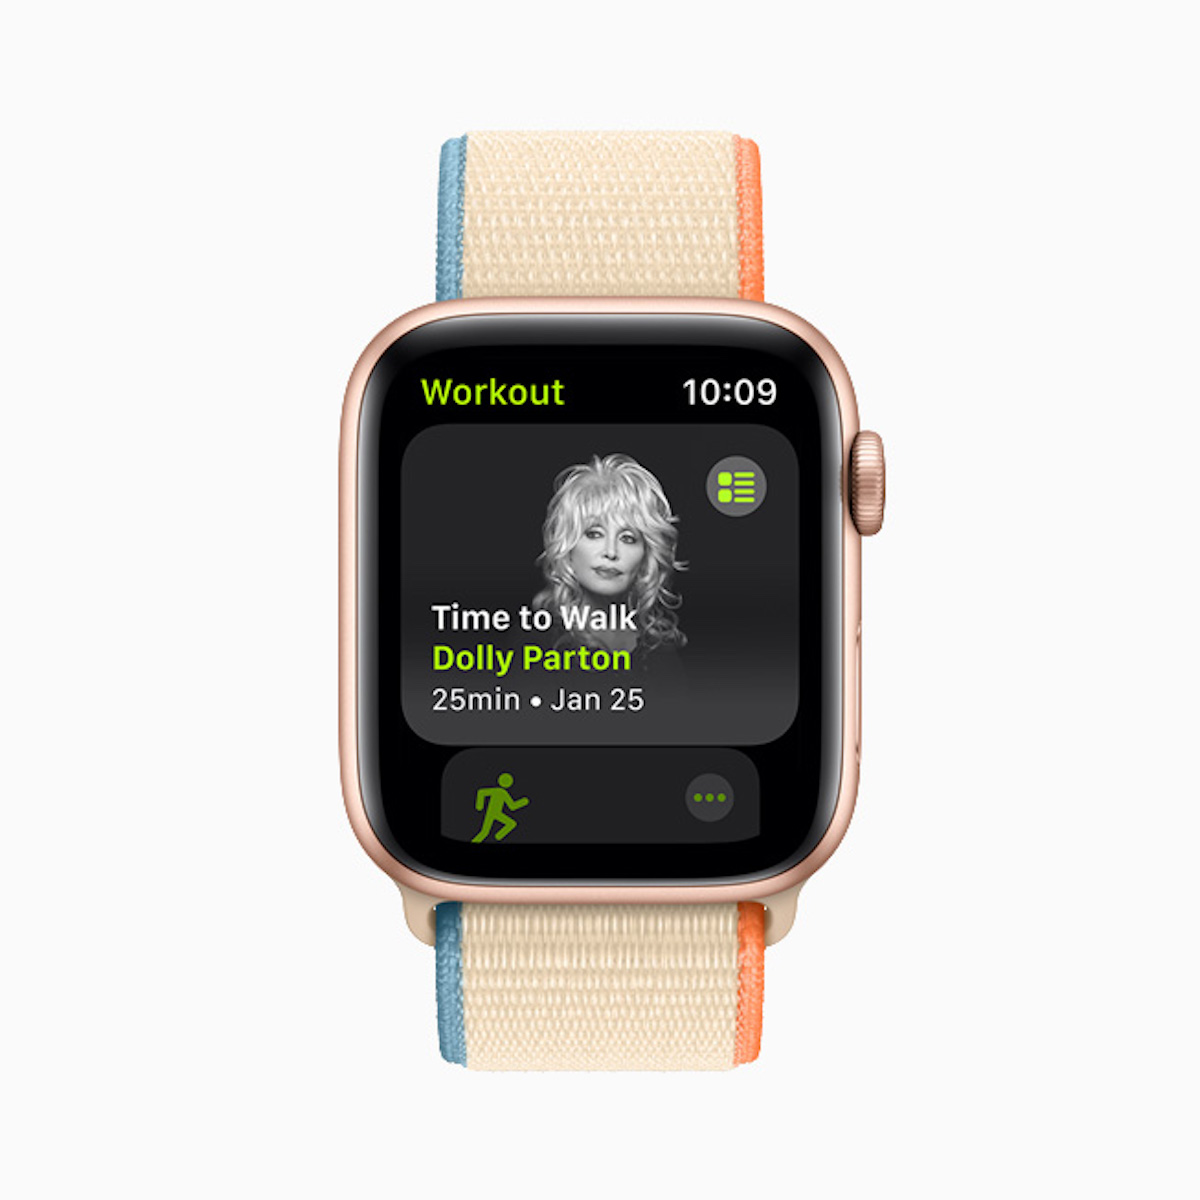 Time to Walk - Apple Fitness